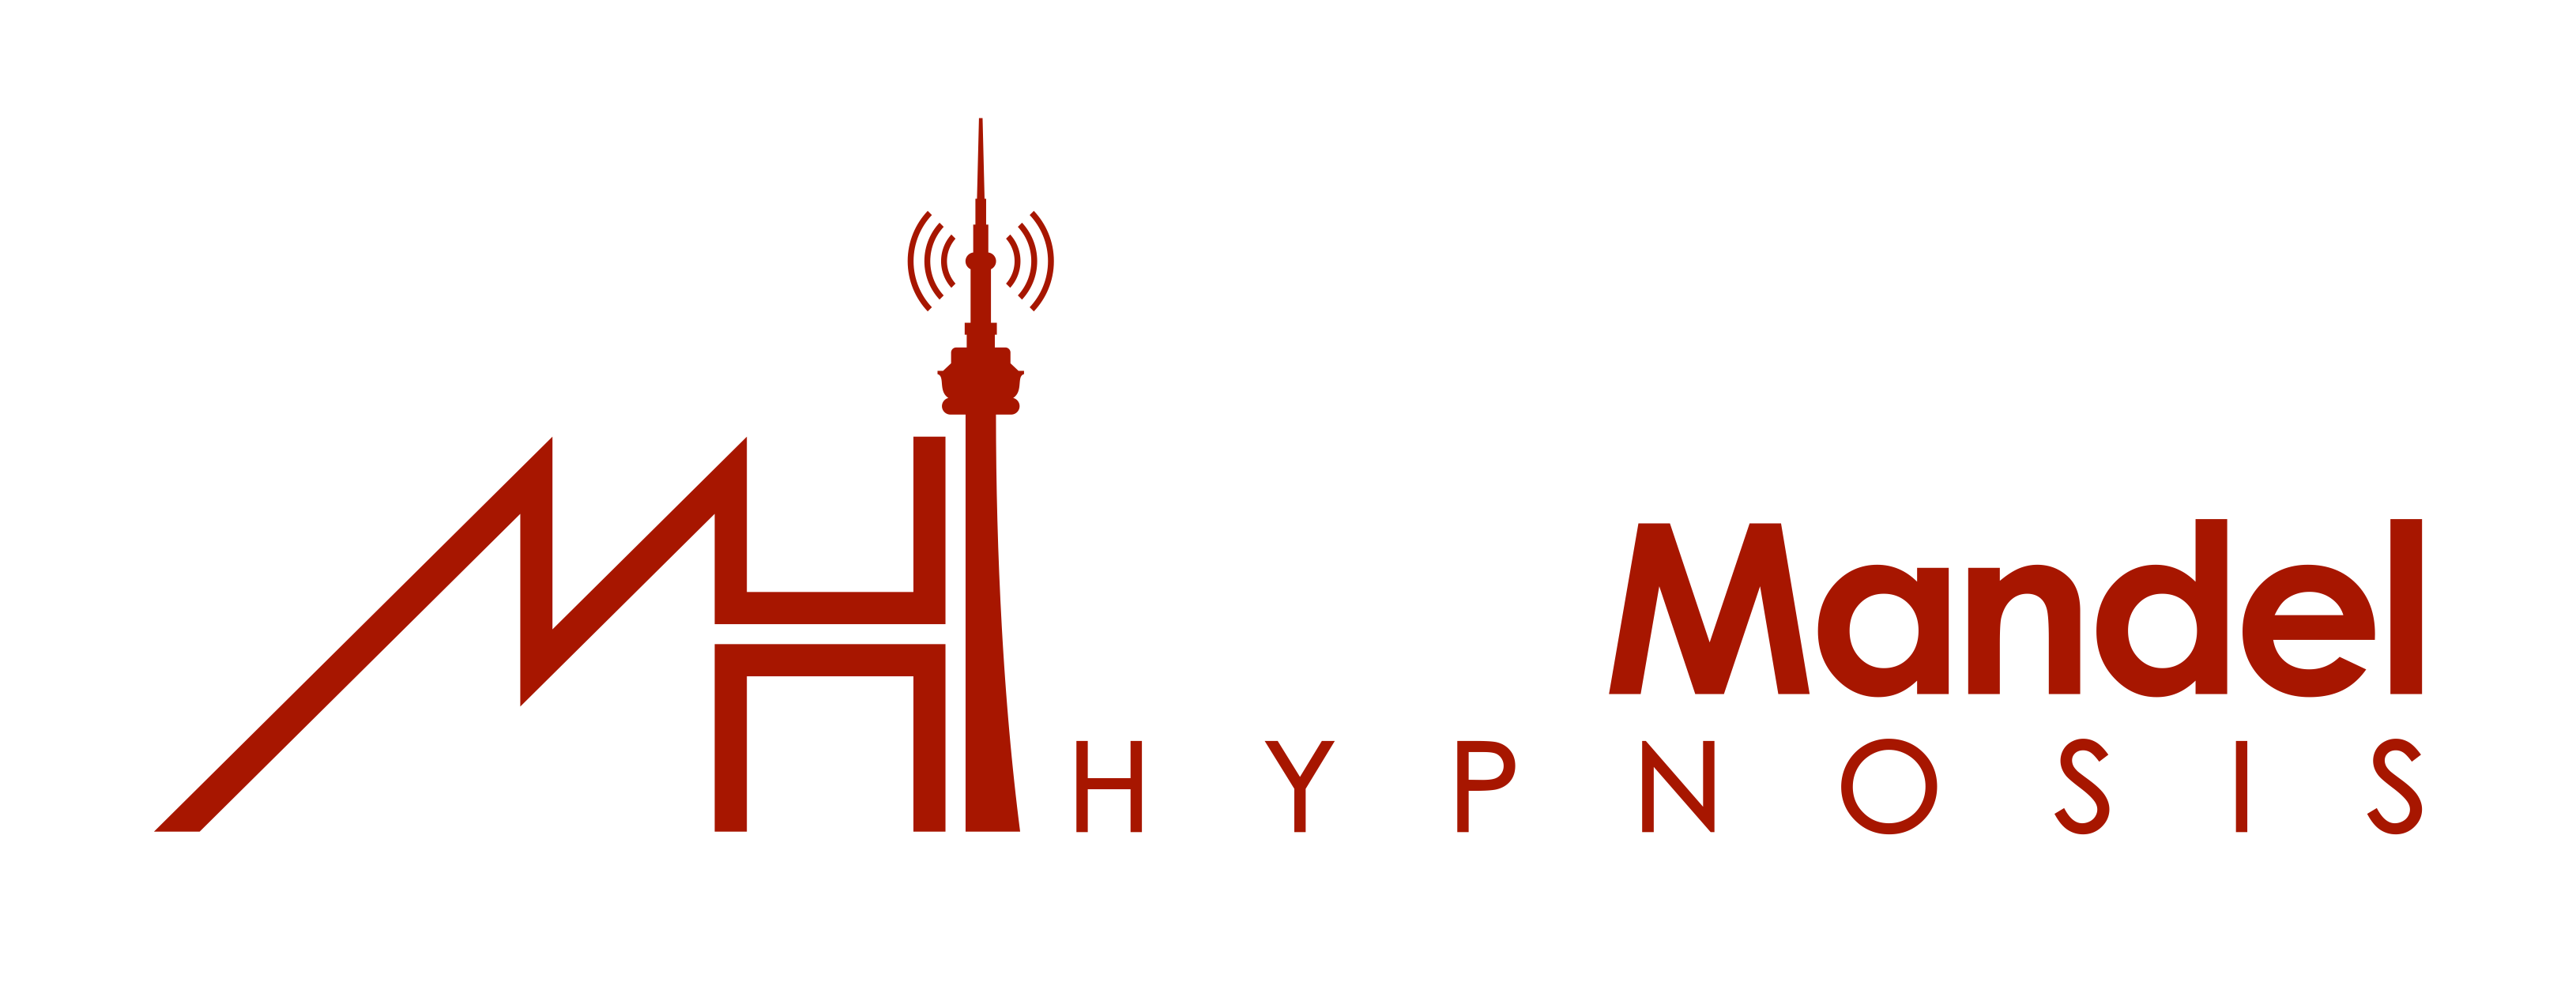 Live Class Hypnosis Training in Toronto with Mike Mandel